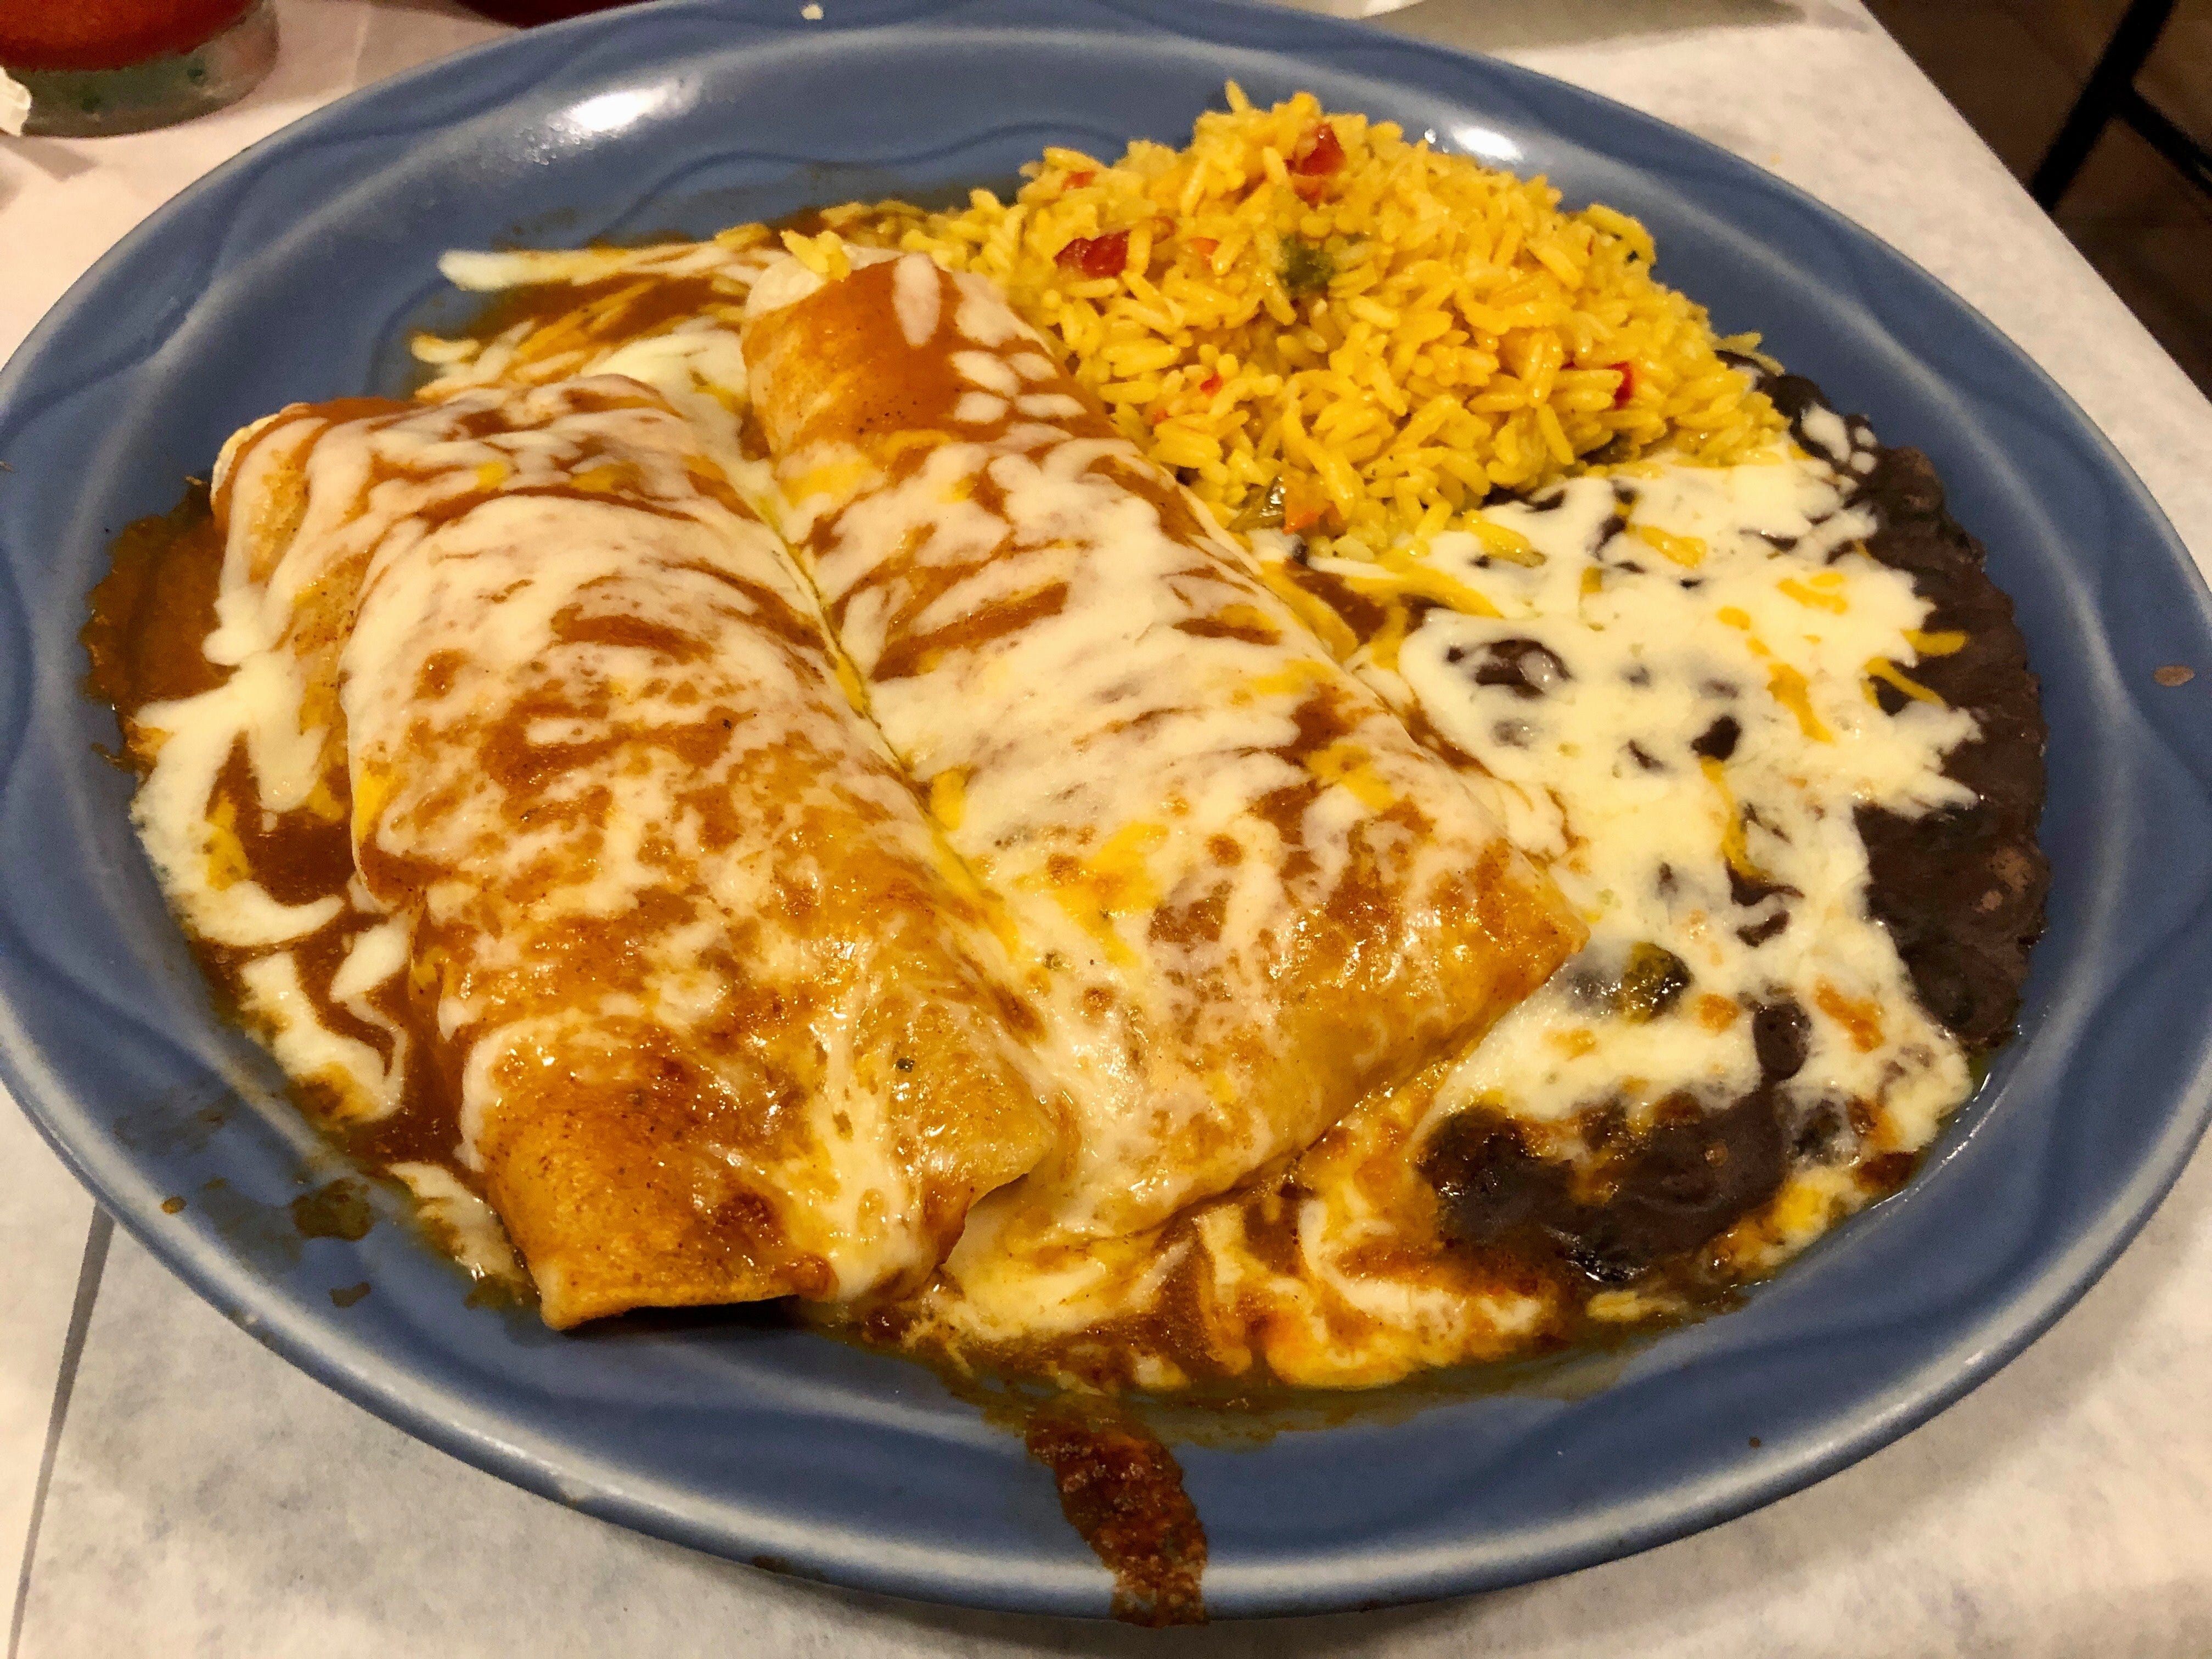 Chicken enchiladas with rice and beans at the new La Bamba location in East Naples.